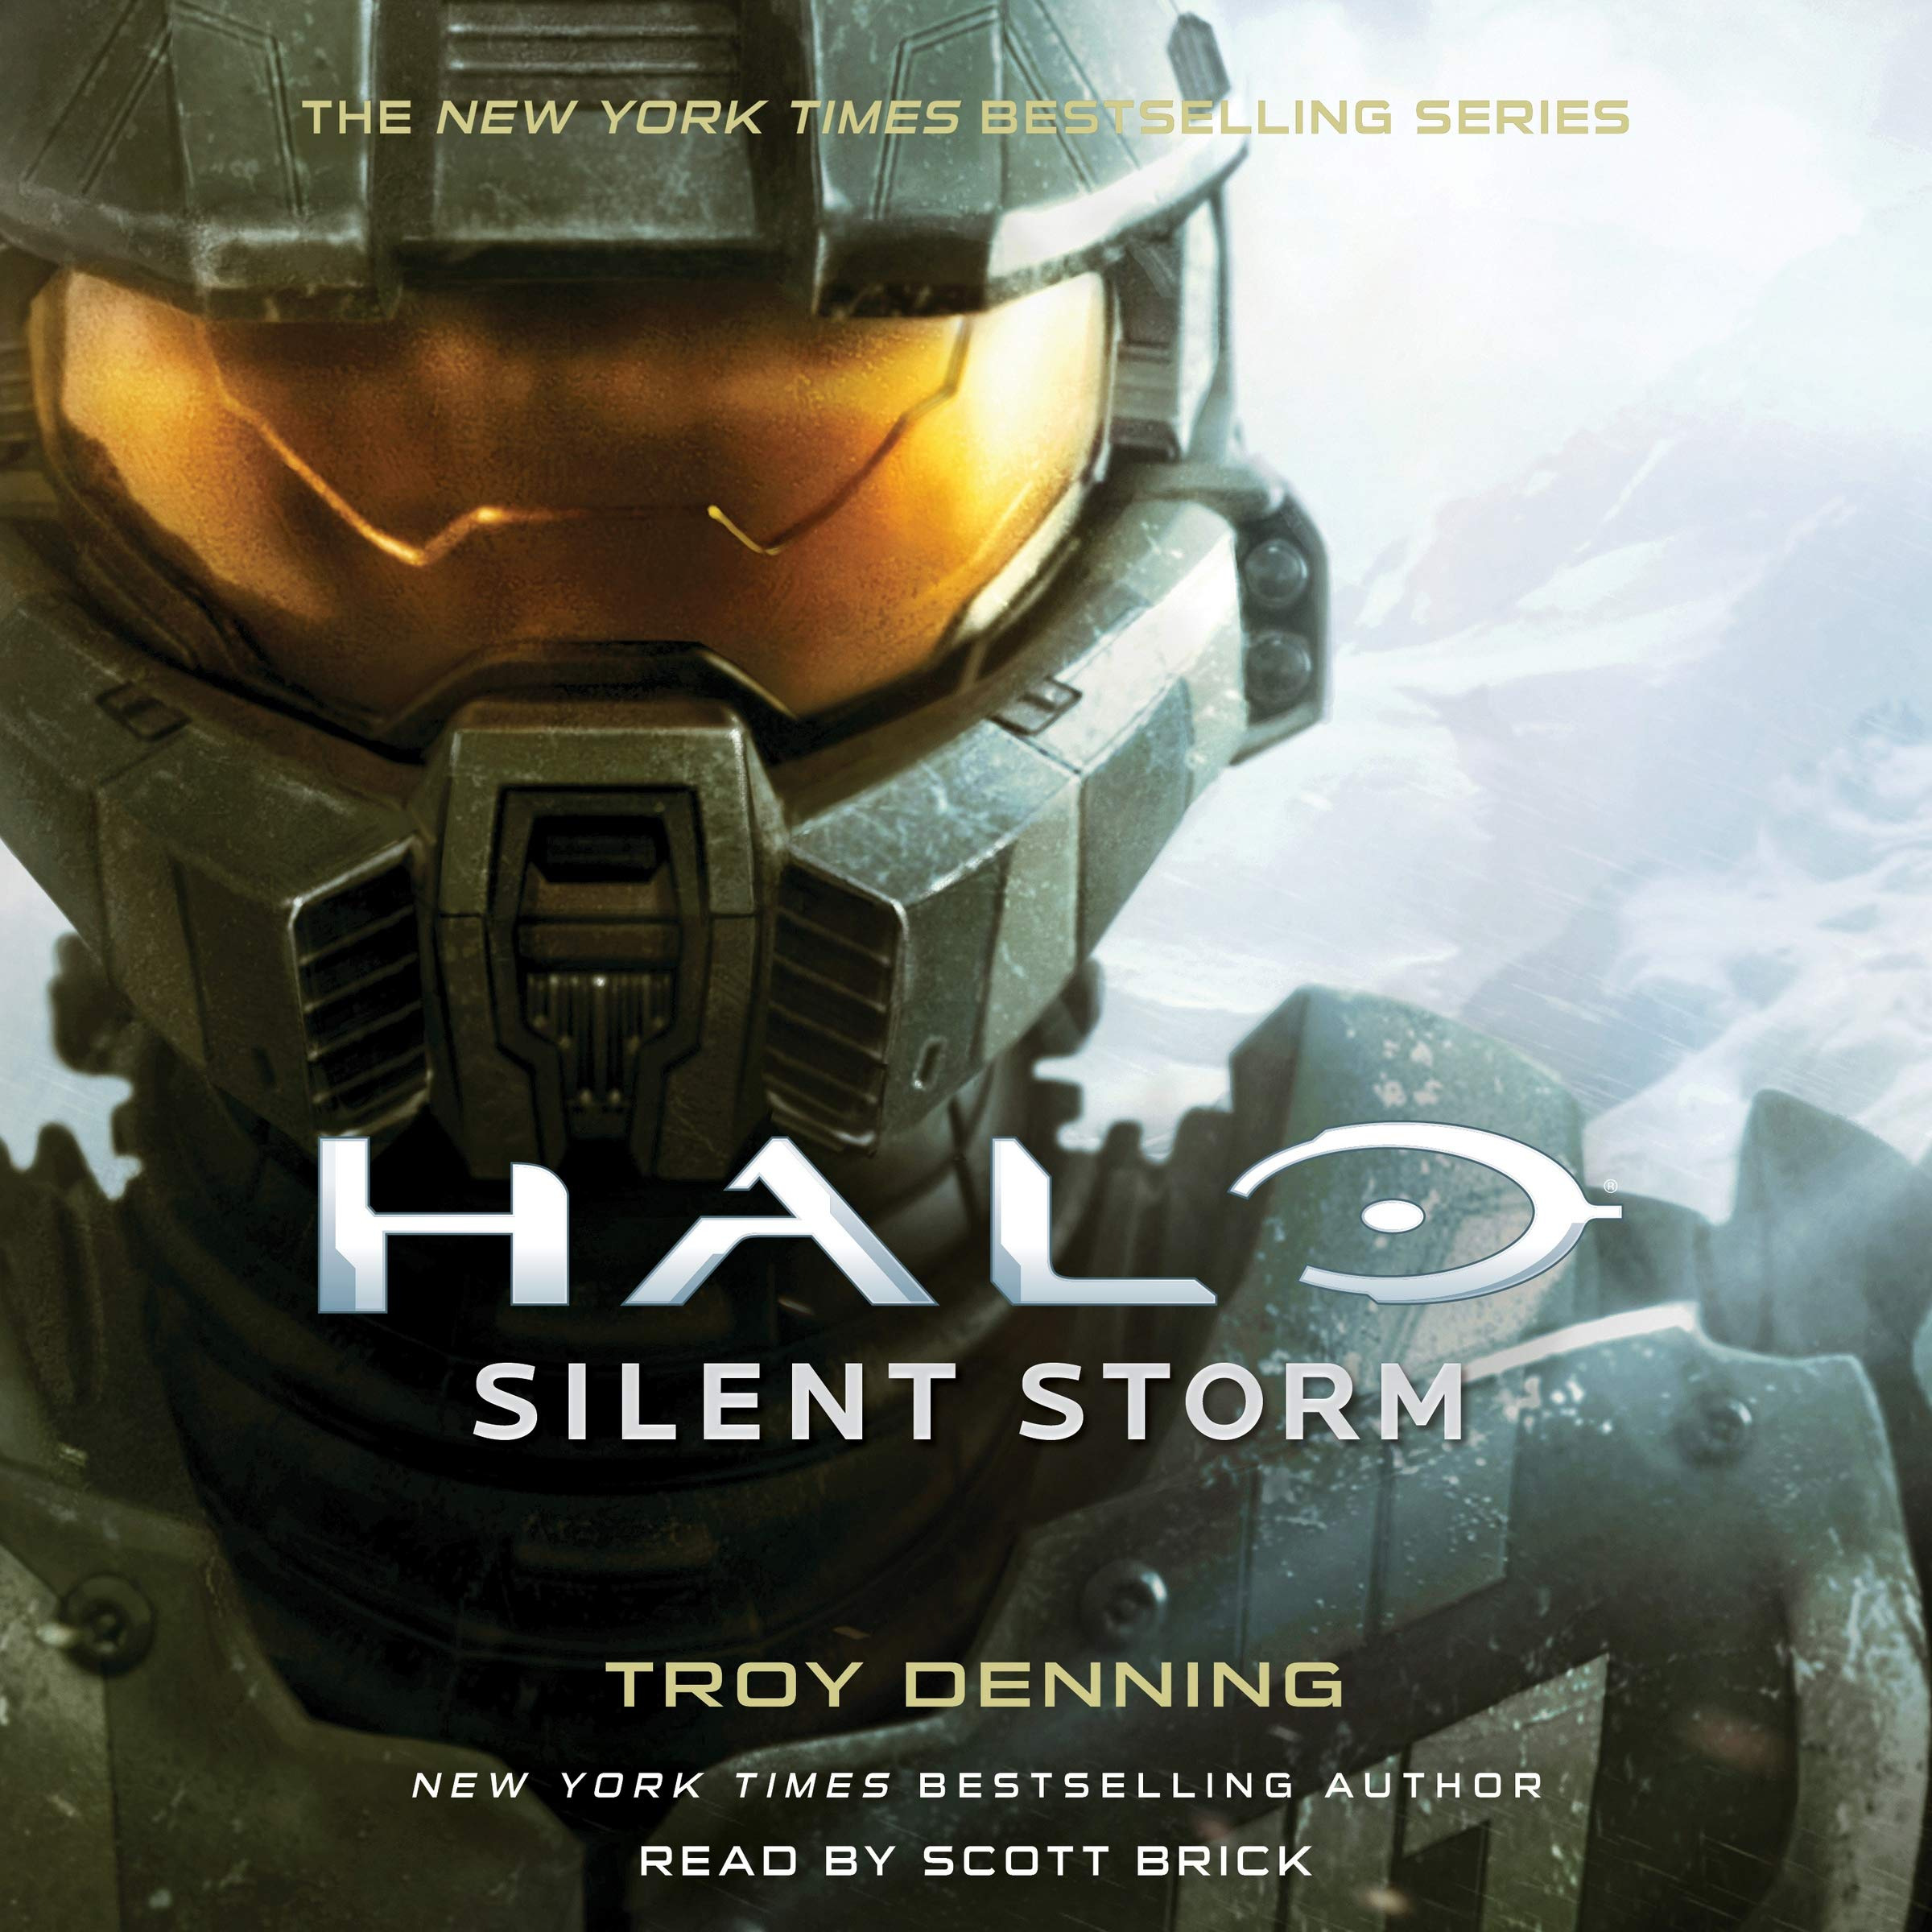 Amazon.com: Halo: Silent Storm: A Master Chief Story (Halo series, Book 23)  (Halo: Master Chief Story) (9781508264194): Troy Denning: Books